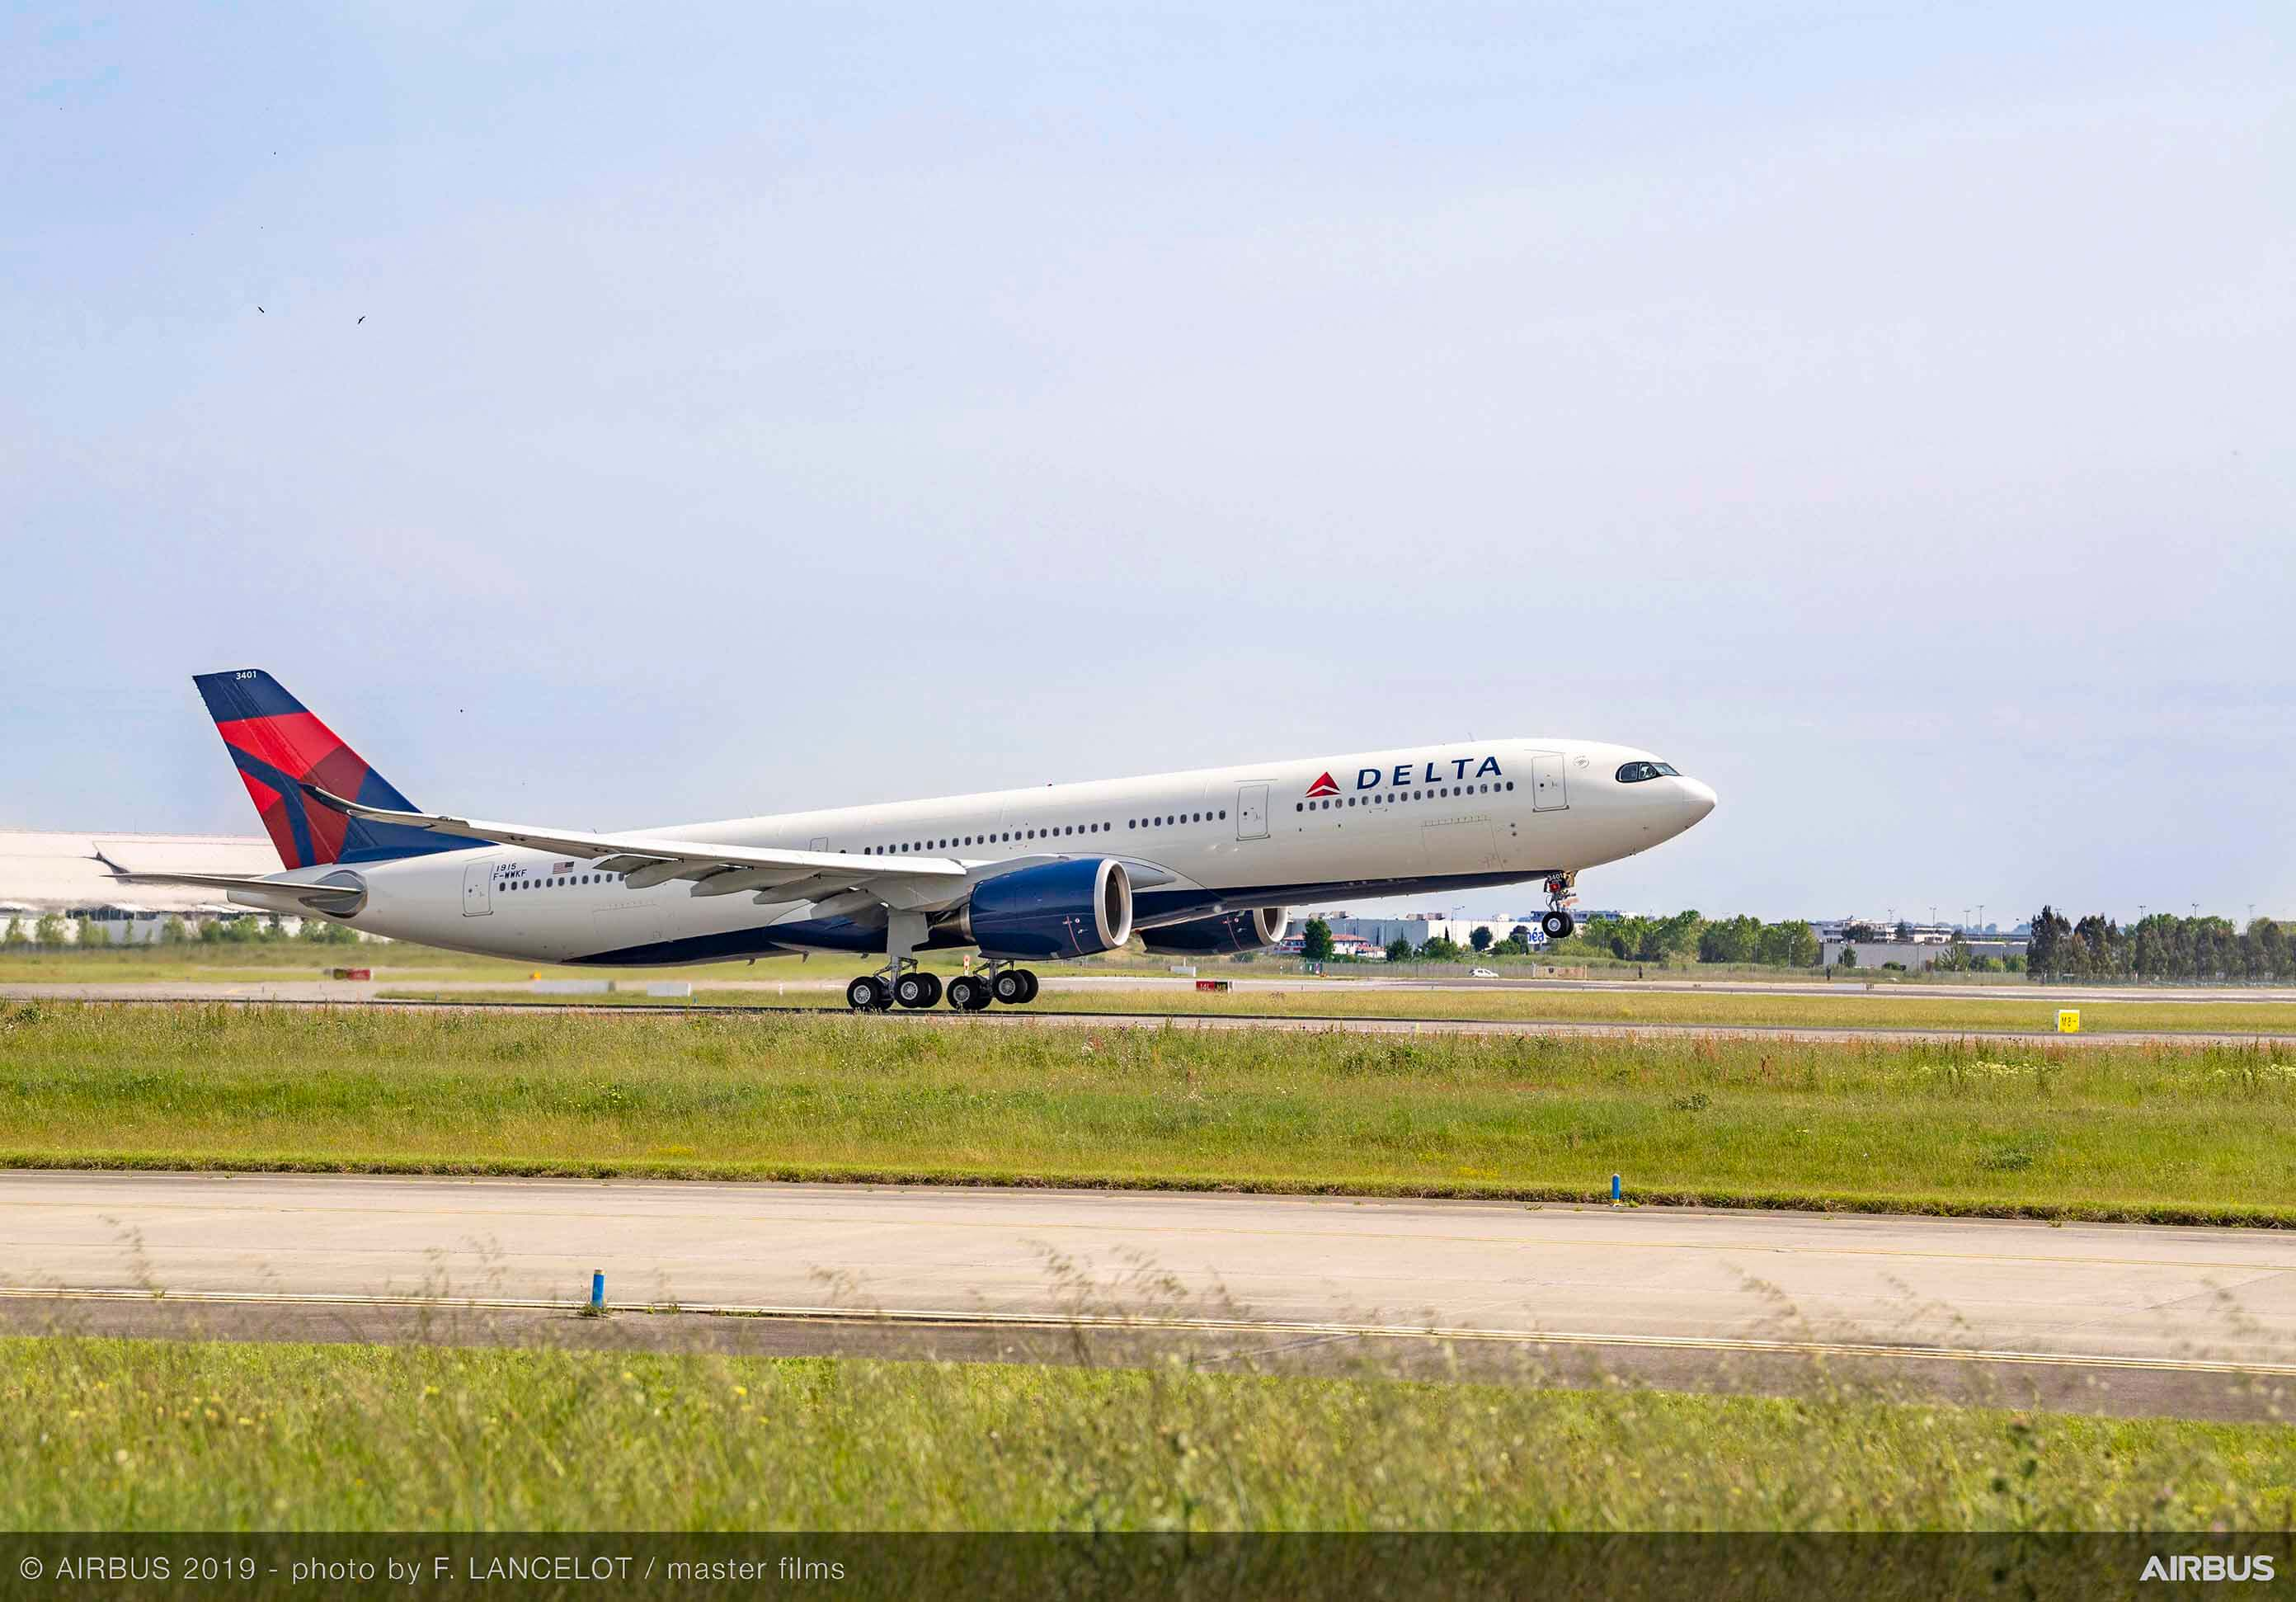 Airbus delivers first highly efficient A330neo to Delta Air Line